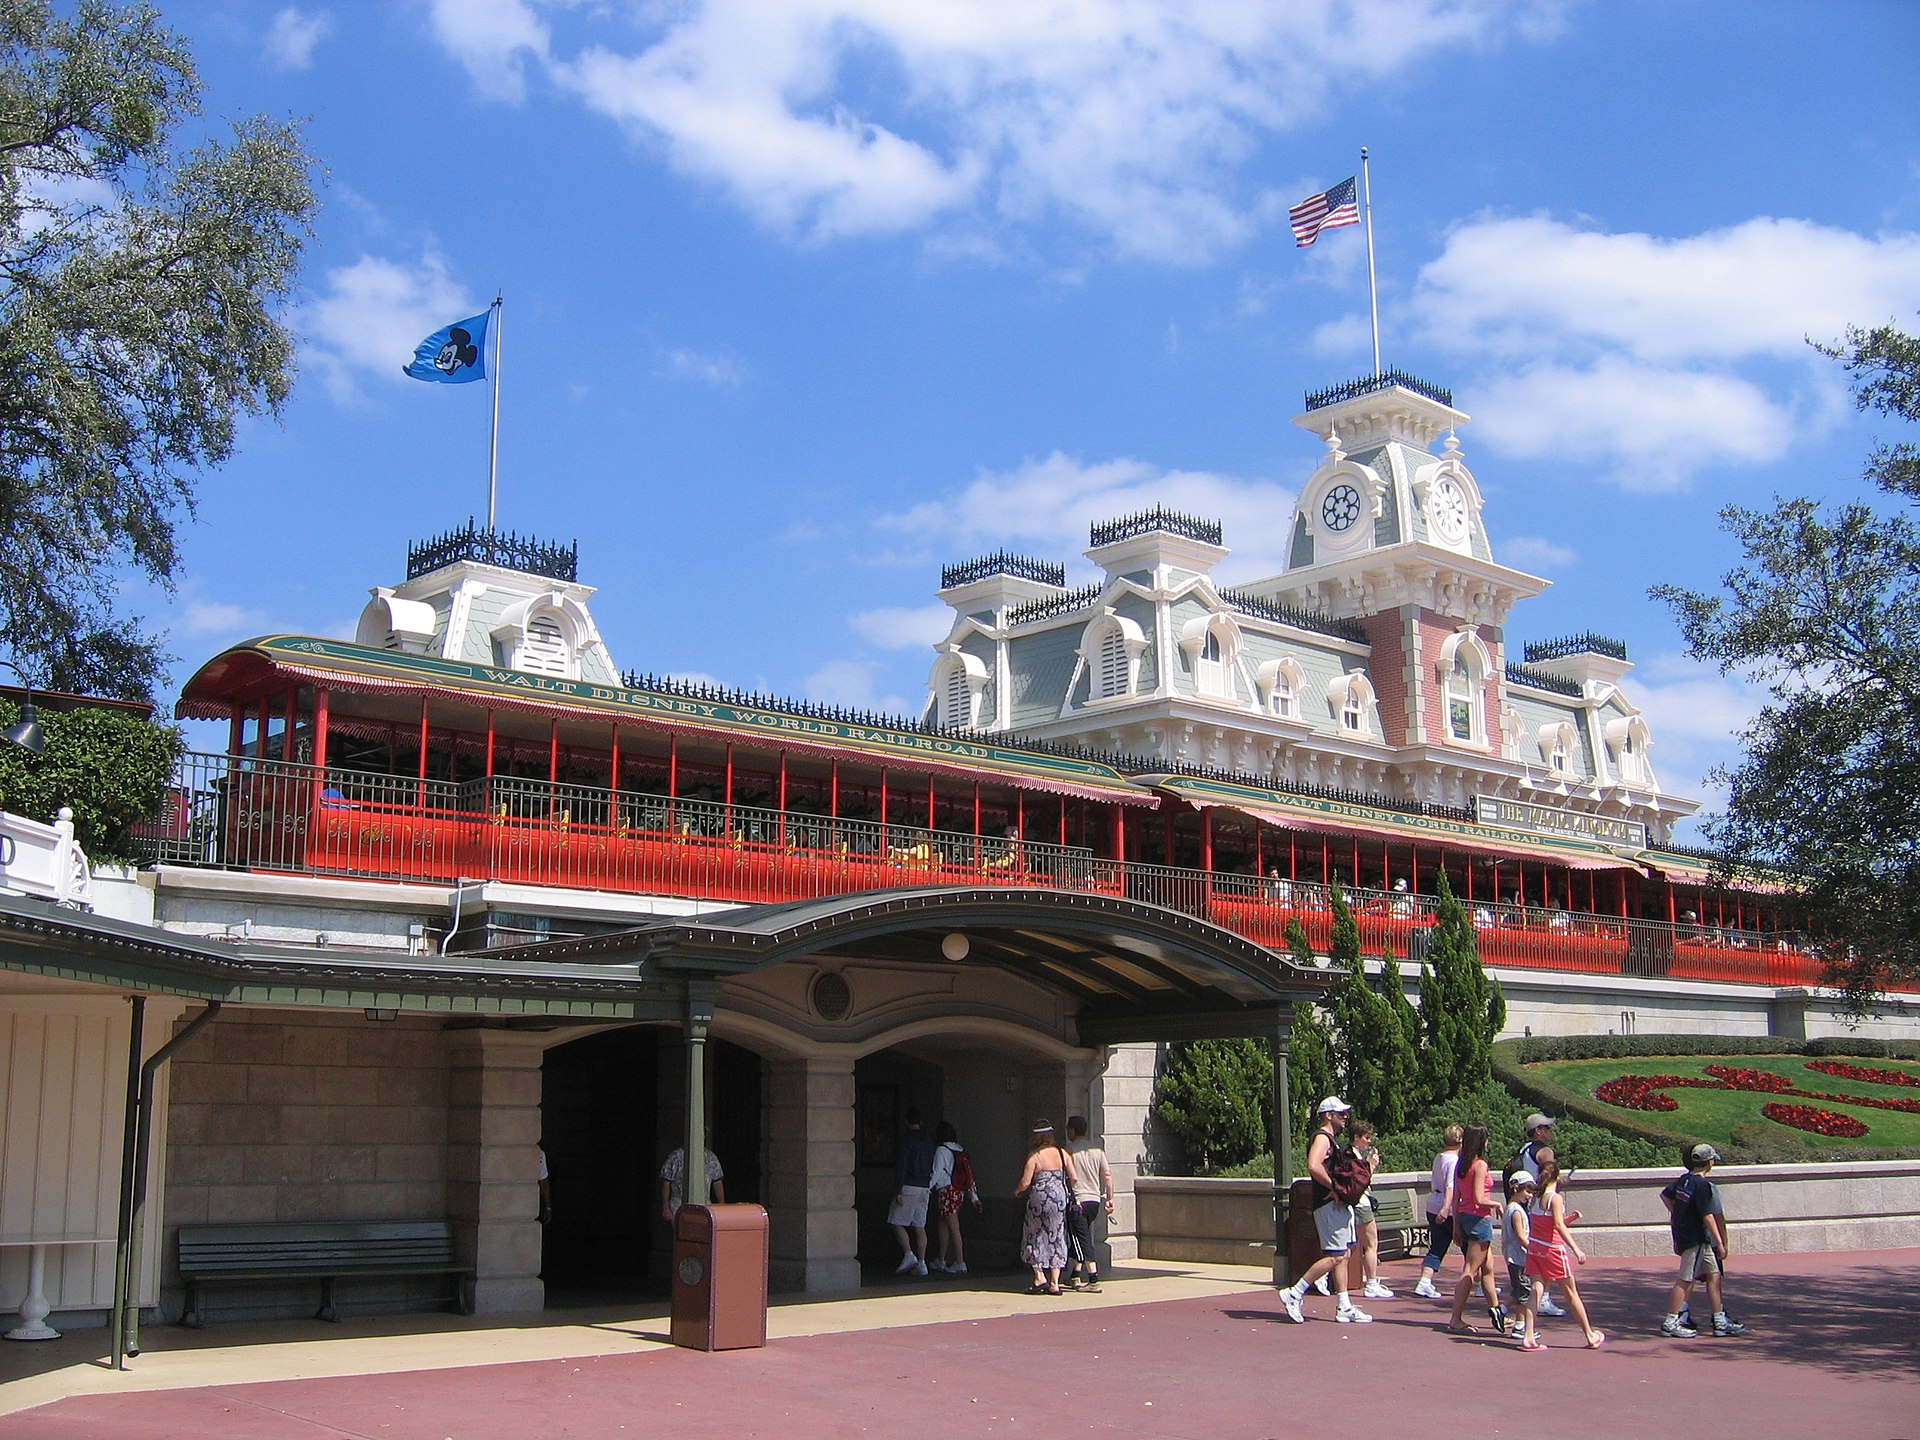 disney walt station world street railroad main usa kingdom magic wikipedia file commons disneyworld wikimedia resort places train pixels